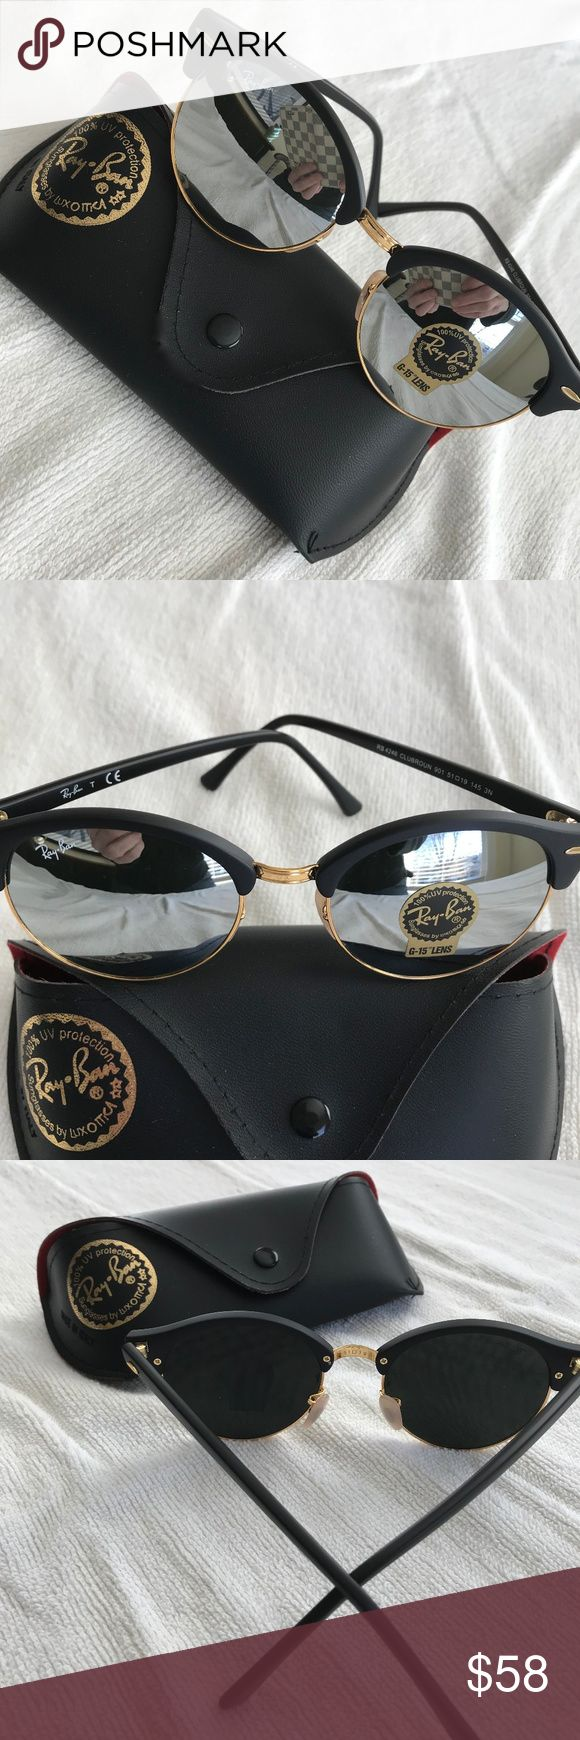 """NEW Ray Ban Roundmaster Mirror Lens Sunglasses NEW - UNISEX Special Edition Roundmaster Mirrored Lens Sunglasses. Fantastic deal. Worn once. Measure 5-1/2"""" across and 5-1/2"""" side arm length. Black Matte Frame with Mirrored Lens and Gold Hardware. Includes Case Pictured. Ray Ban Accessories Sunglasses"""